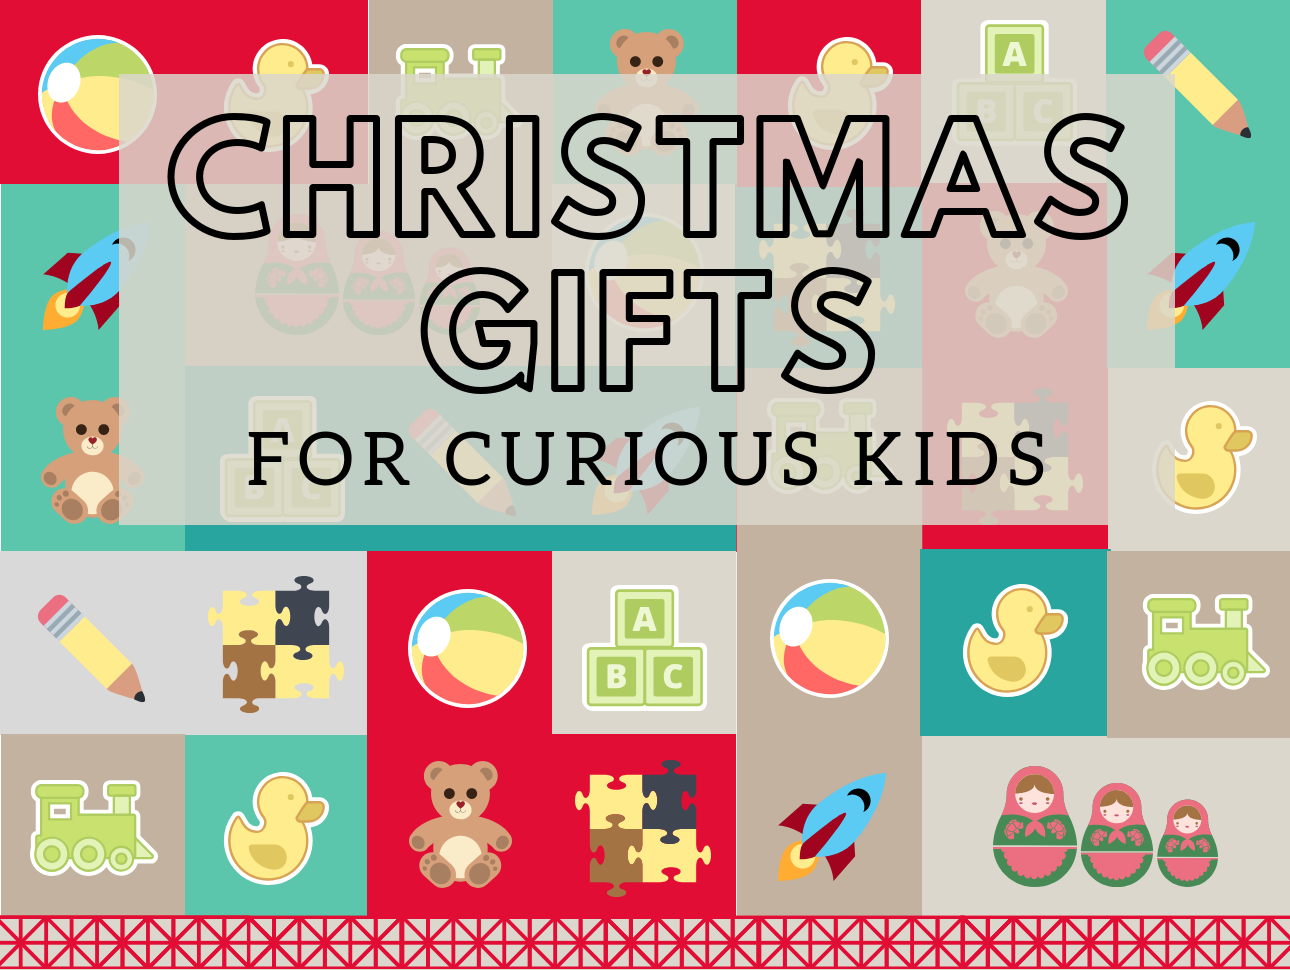 2018 kids Christmas gift guide - christmas gifts for curious kids - blogcrush week 91